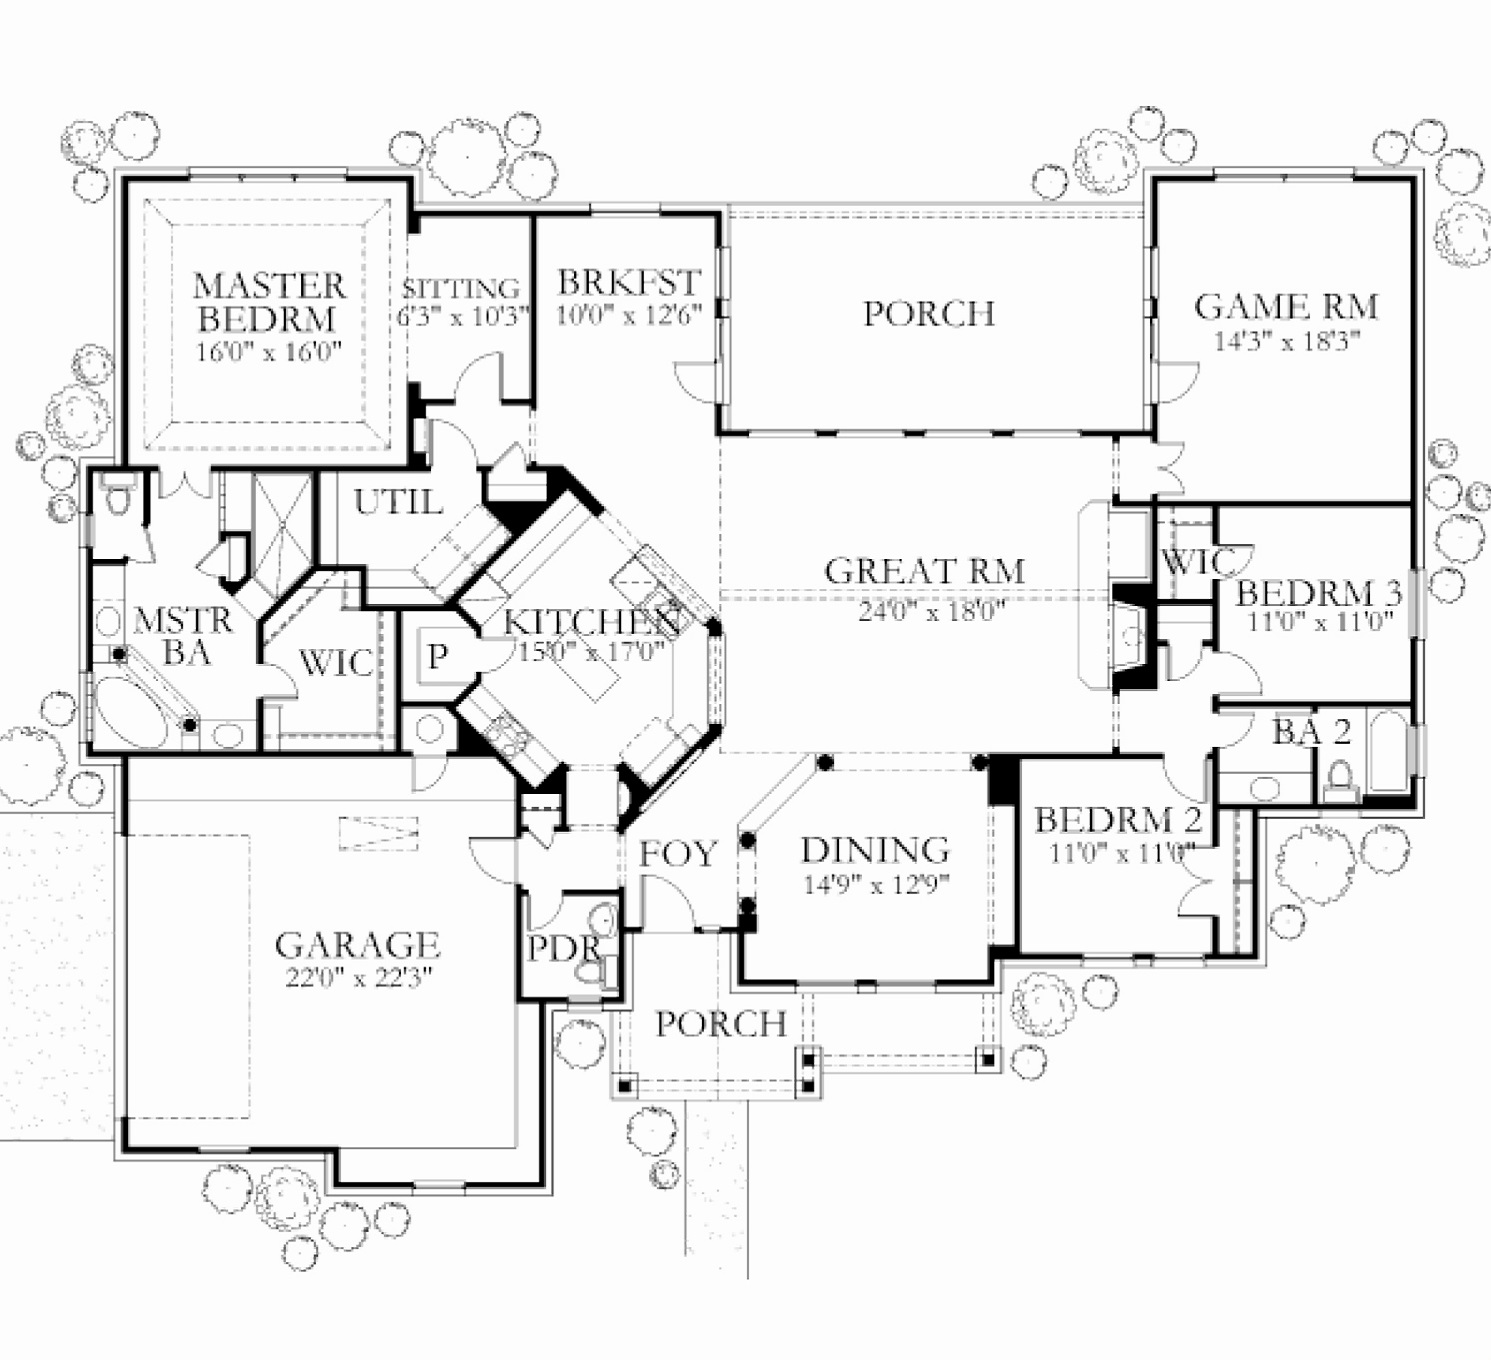 Floor plans glazier homes for 2500 square feet floor plans